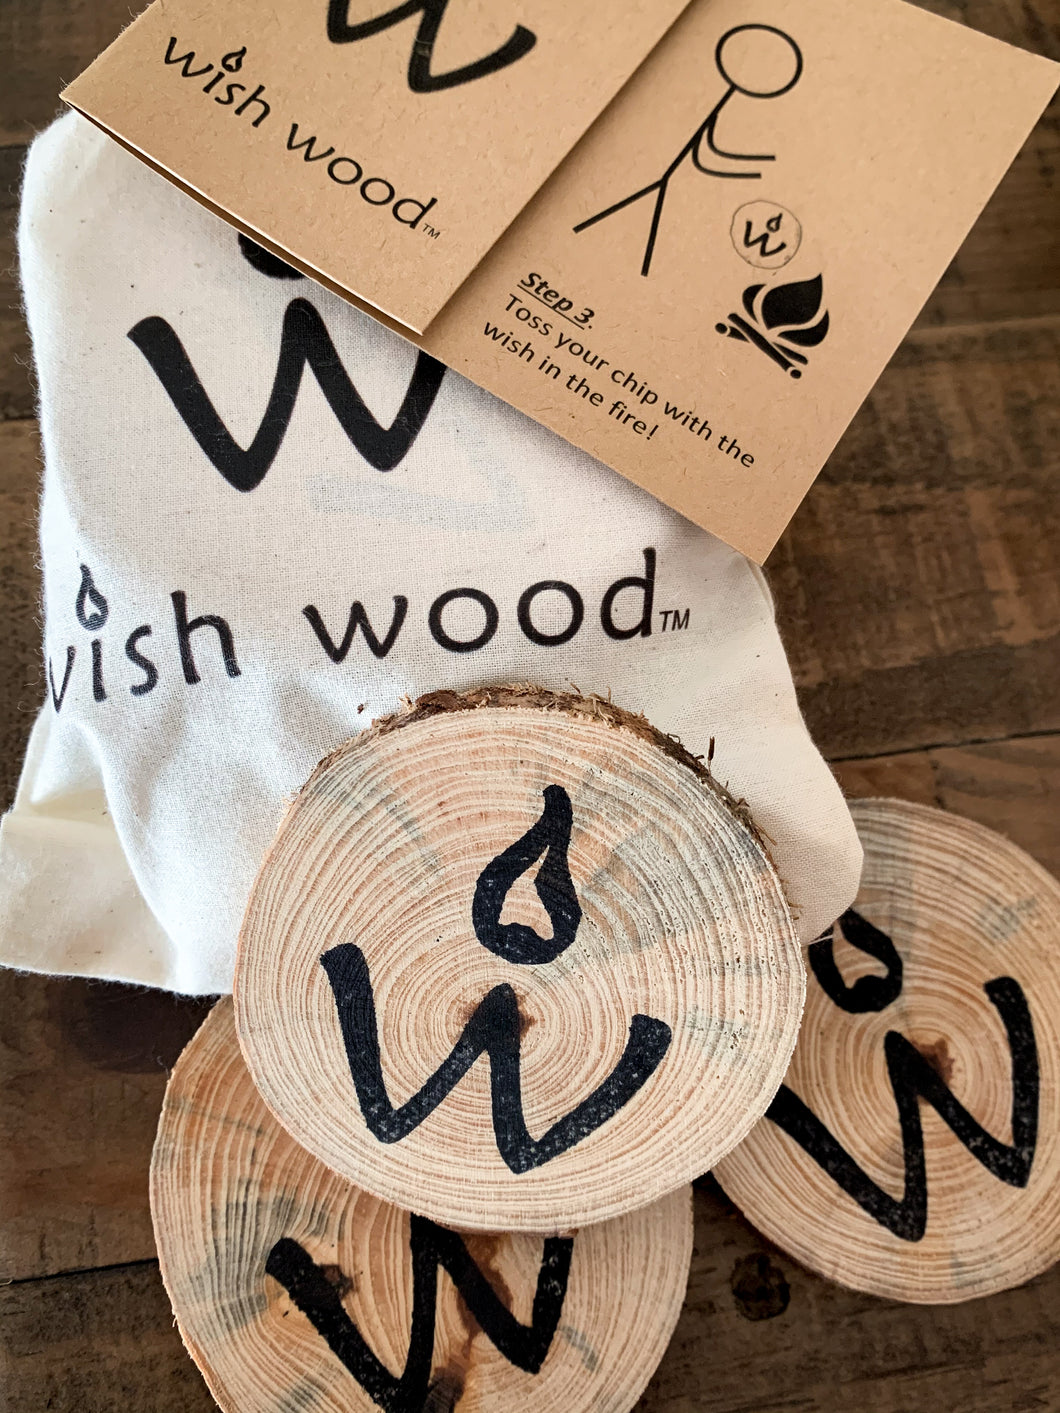 Wish Wood - 5 Pack